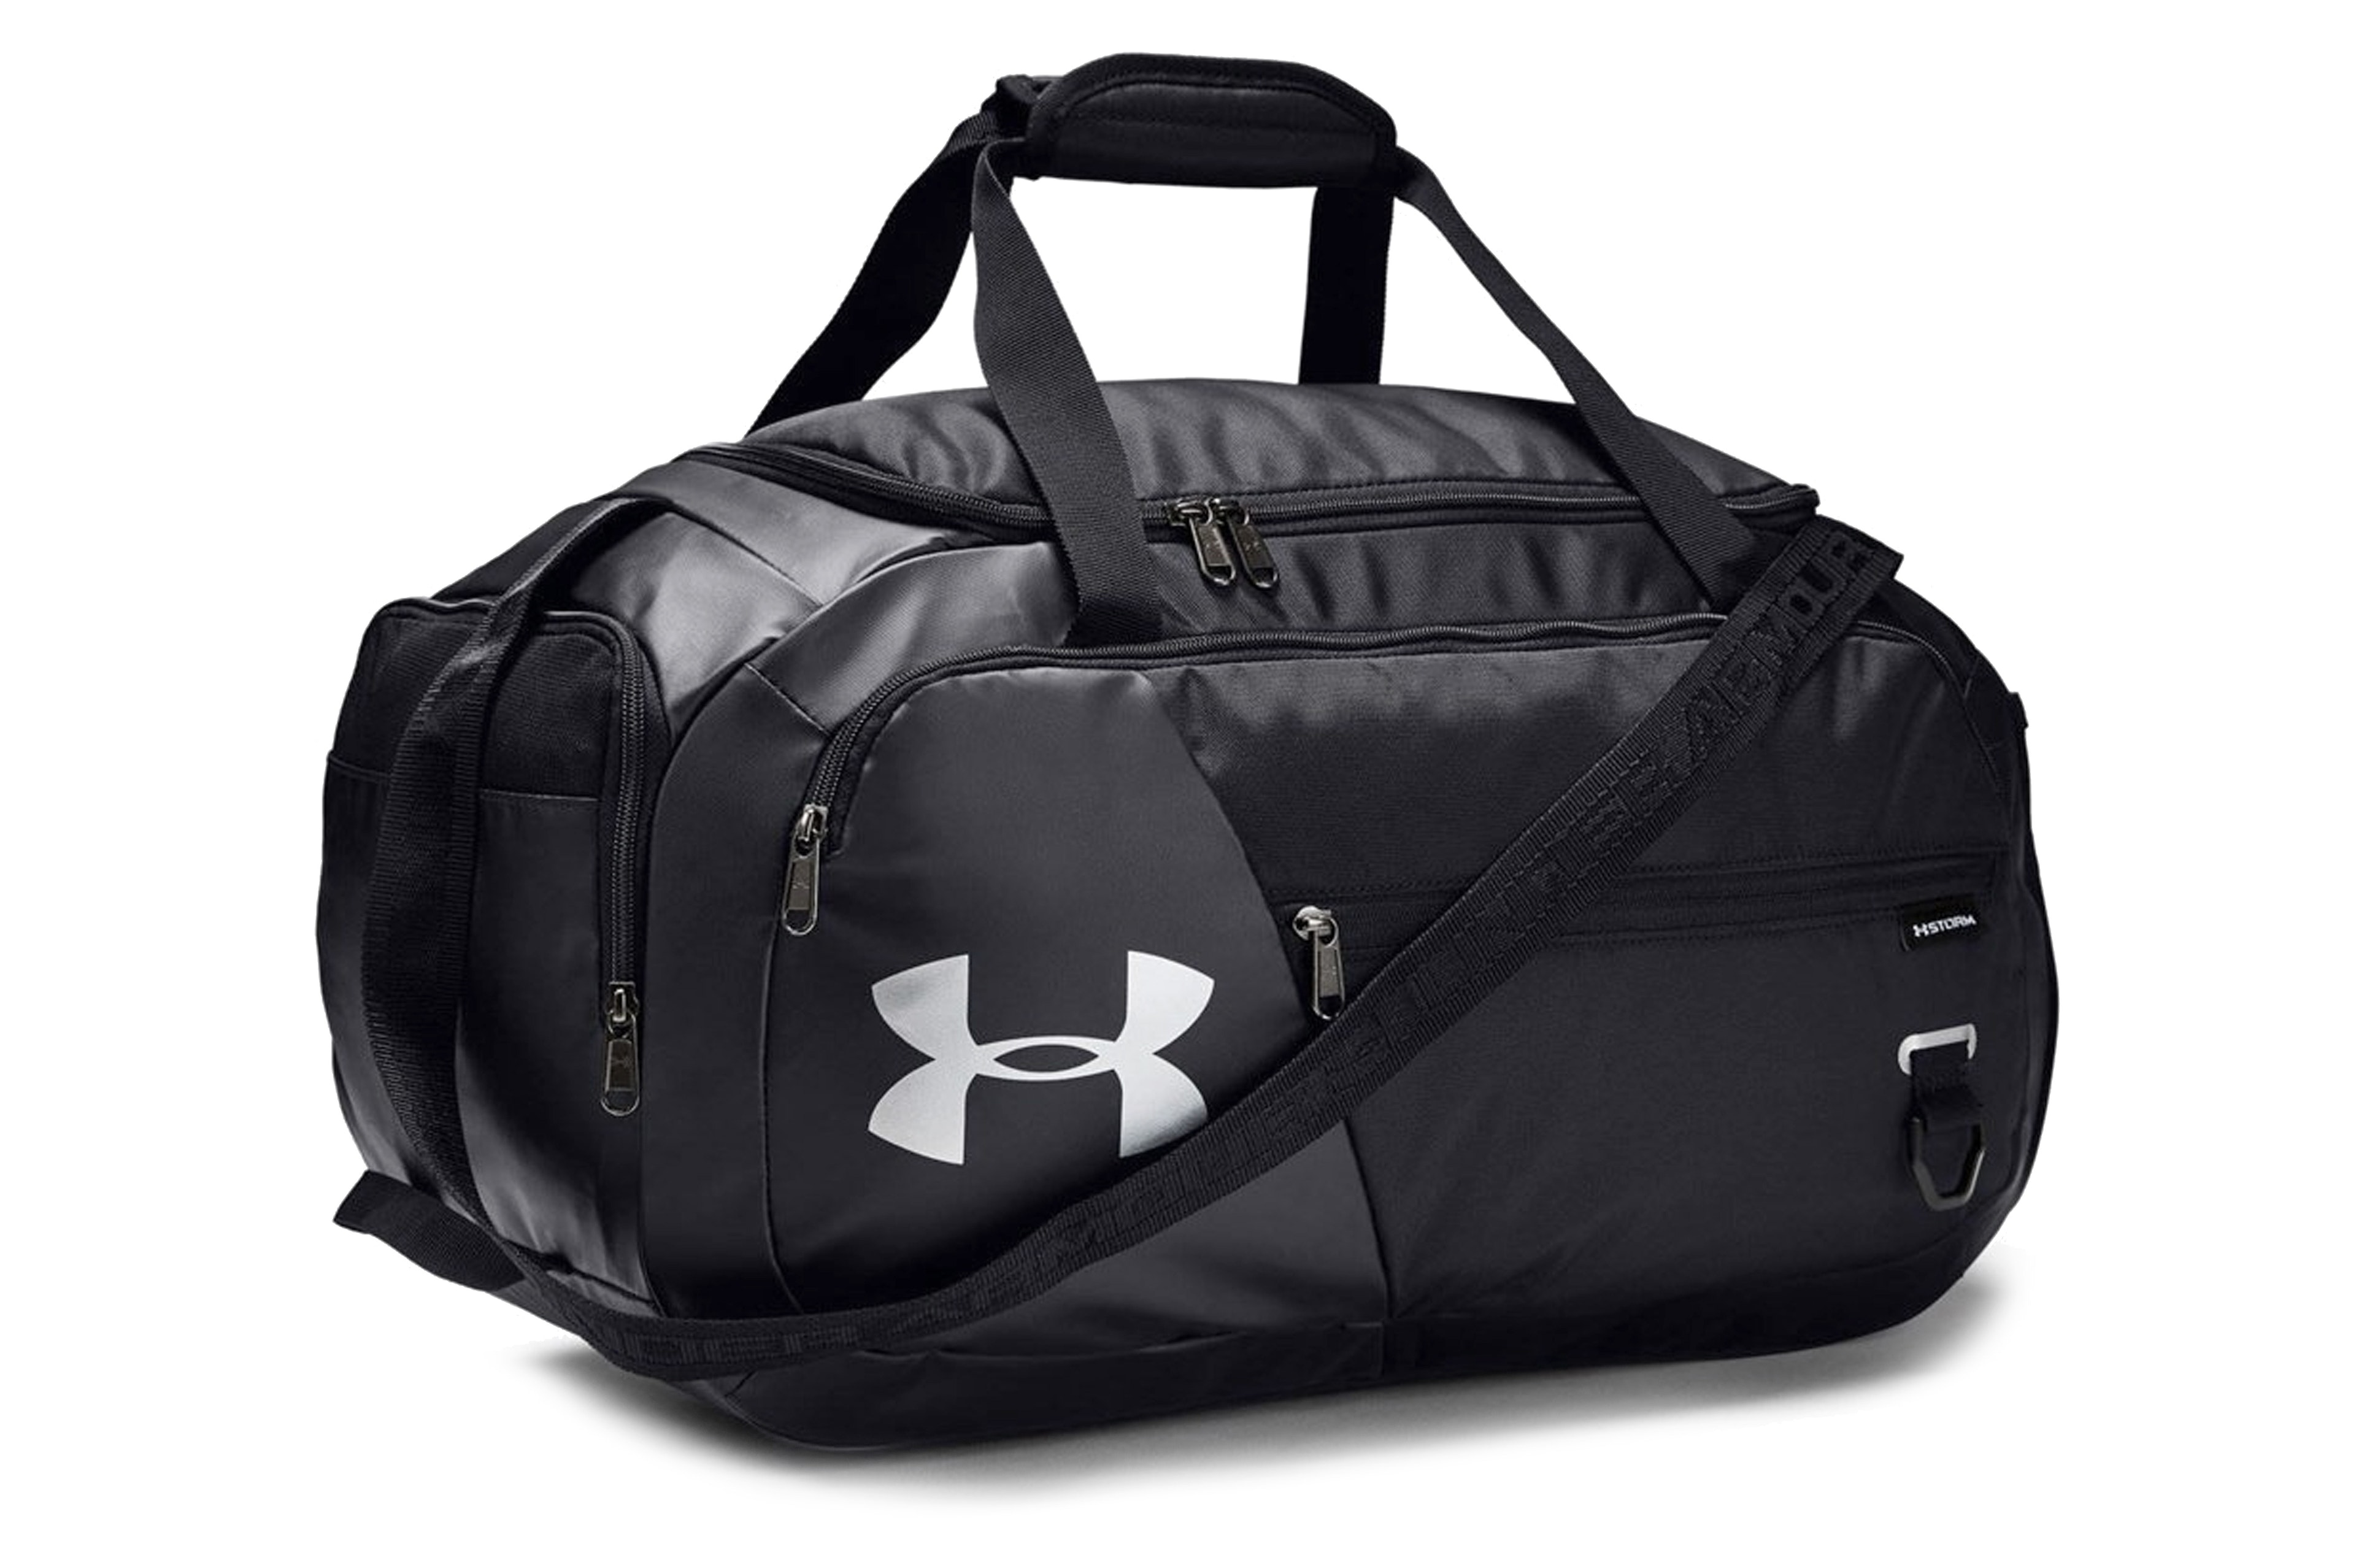 Under Armour Undeniable Duffel 4.0 1342656-001